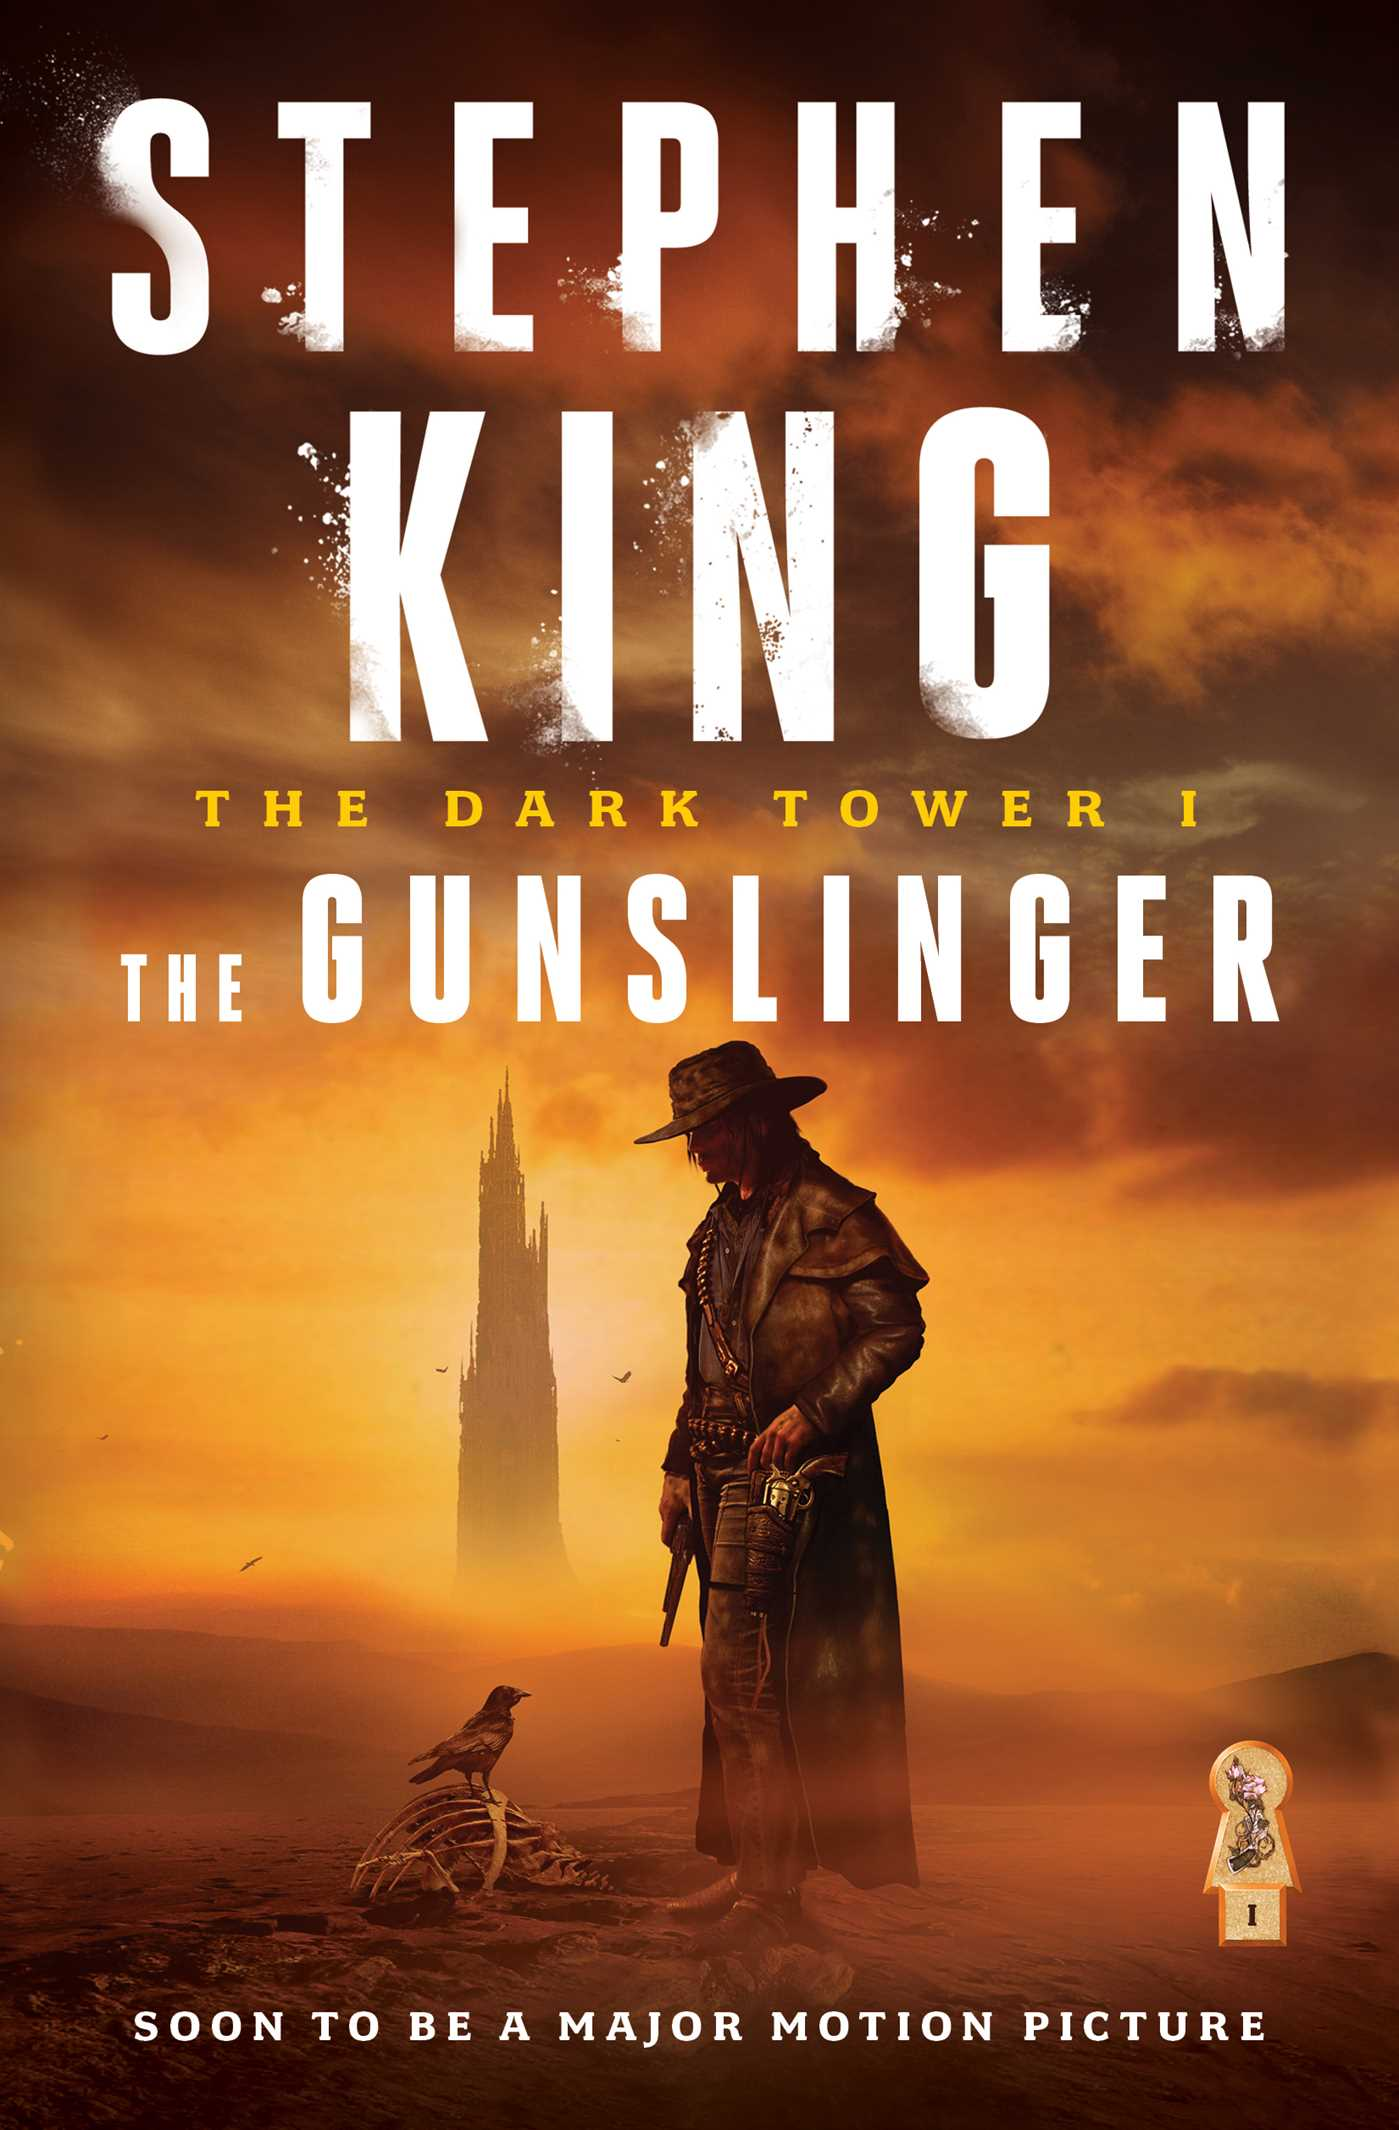 Read These Books Before You Watch The Dark Tower Movie